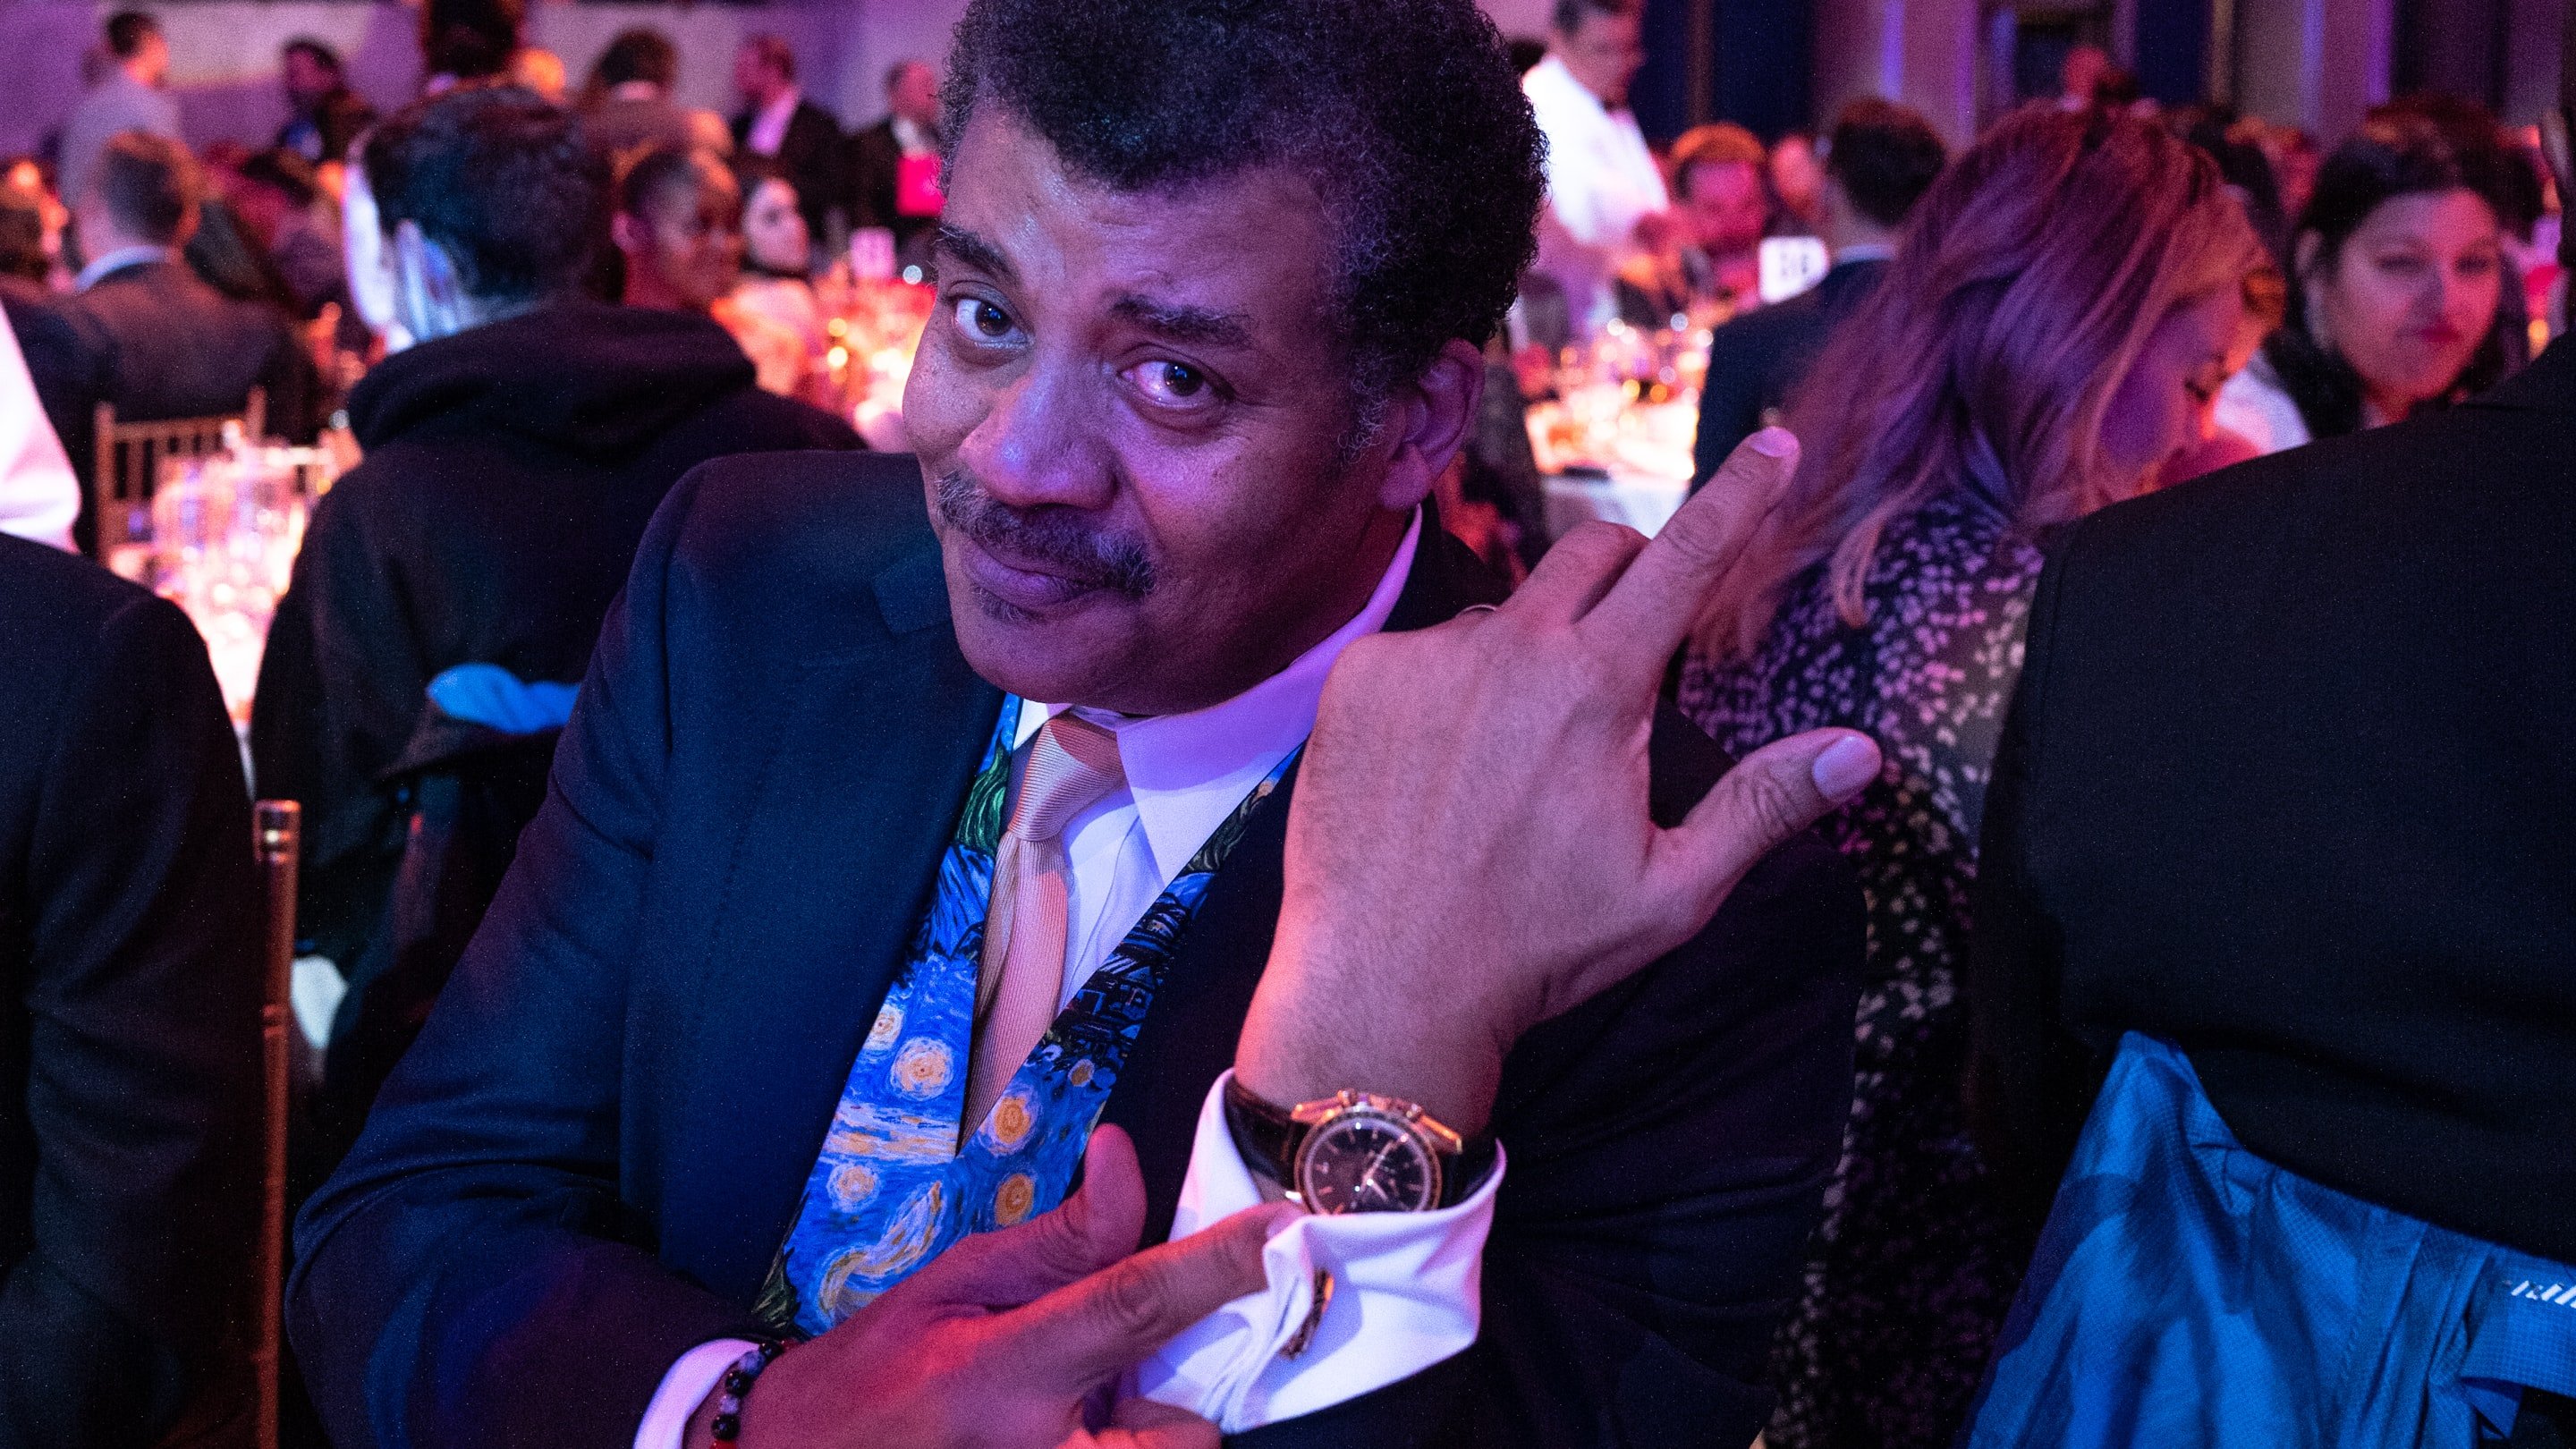 Watch Spotting: Neil deGrasse Tyson Wearing His Rare Speedmaster Professional 'Starmus' At The 2019 Webby Awards